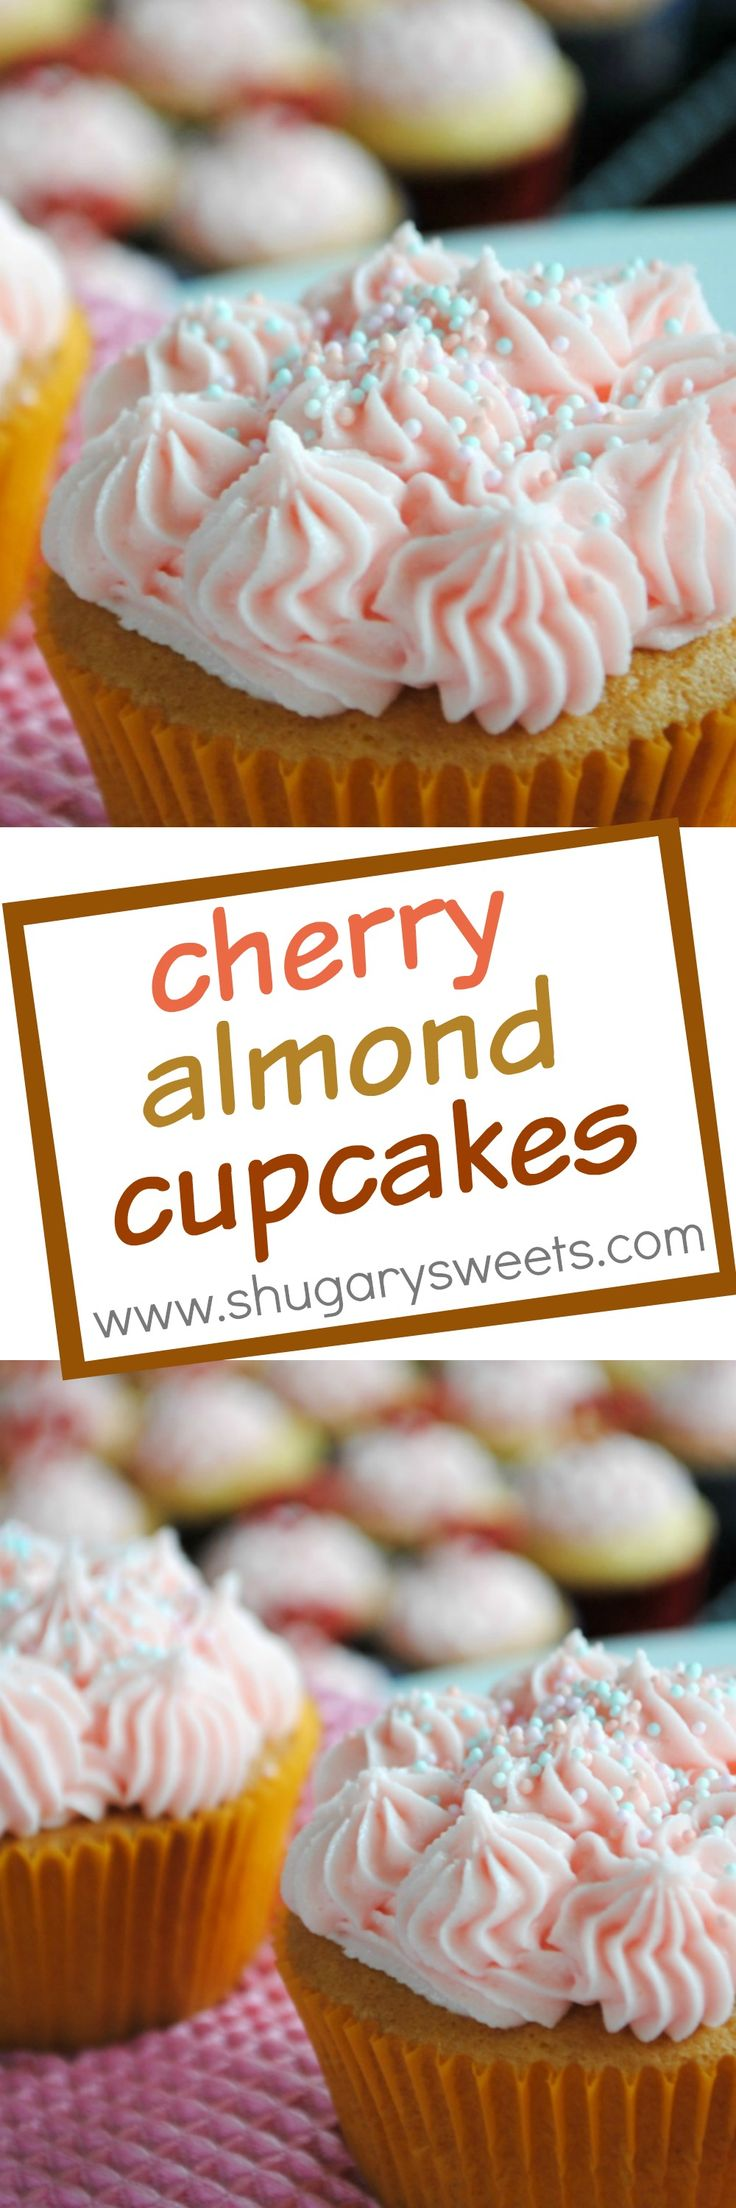 Cherry Almond Cupcake: sweet almond cupcakes with a creamy cherry frosting!